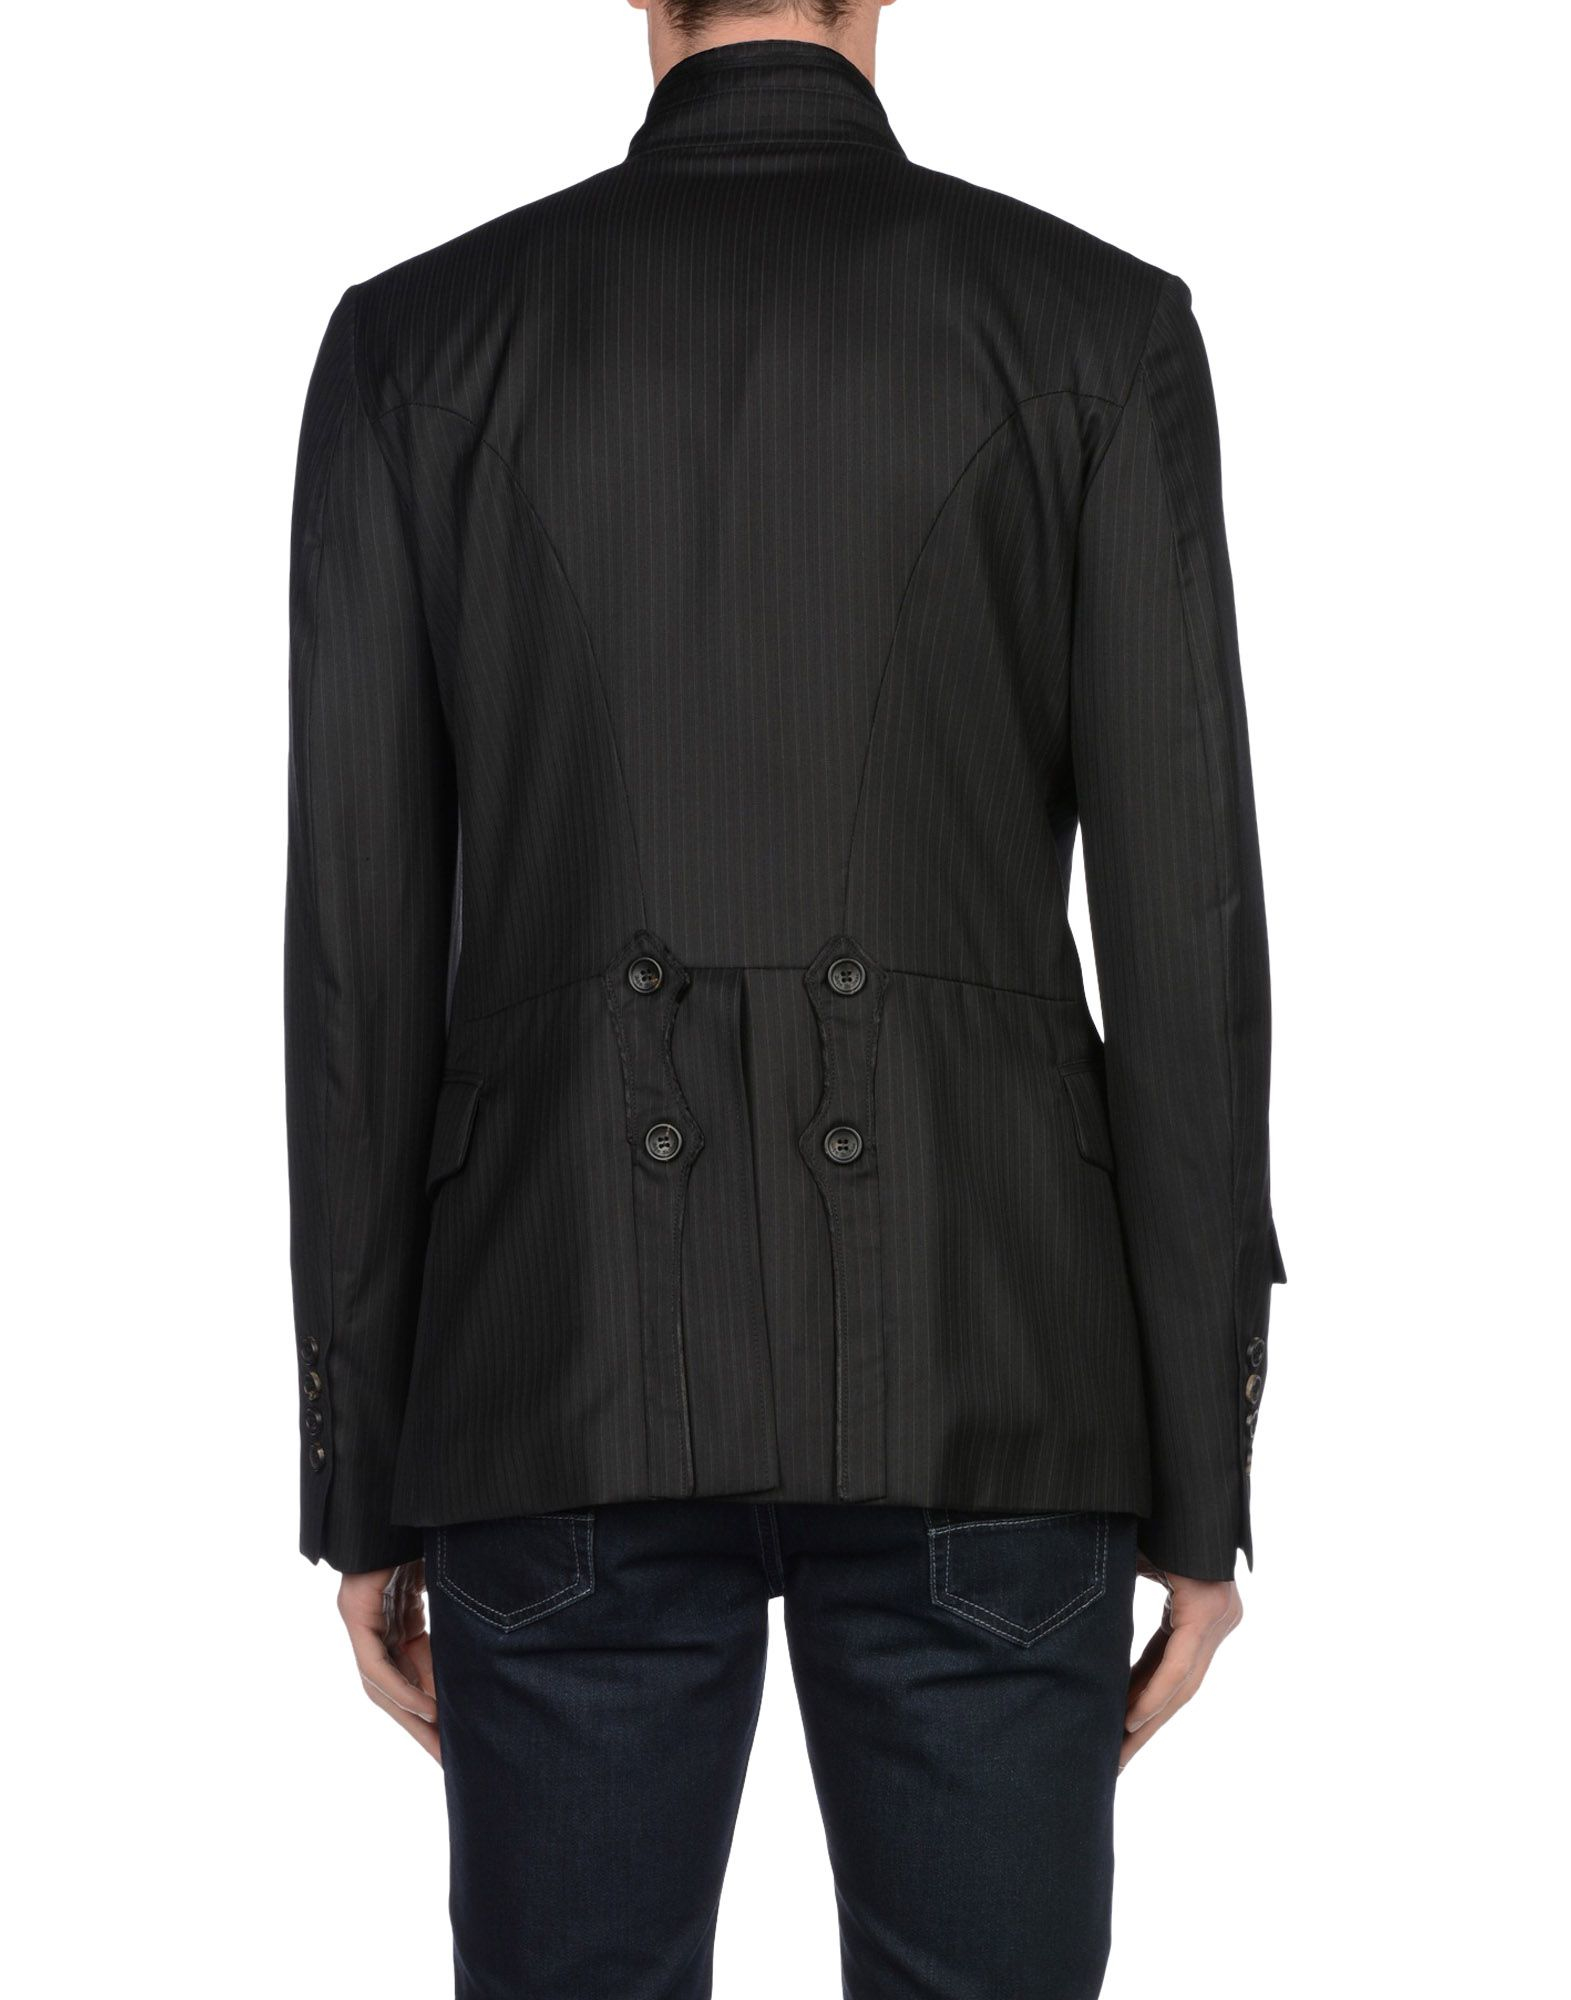 galliano black single men 49-96 of 157 results for clothing, shoes & jewelry: men: galliano men galliano men men's black straight leg classic jeans us 29 it 43 $ 59 99 john galliano.